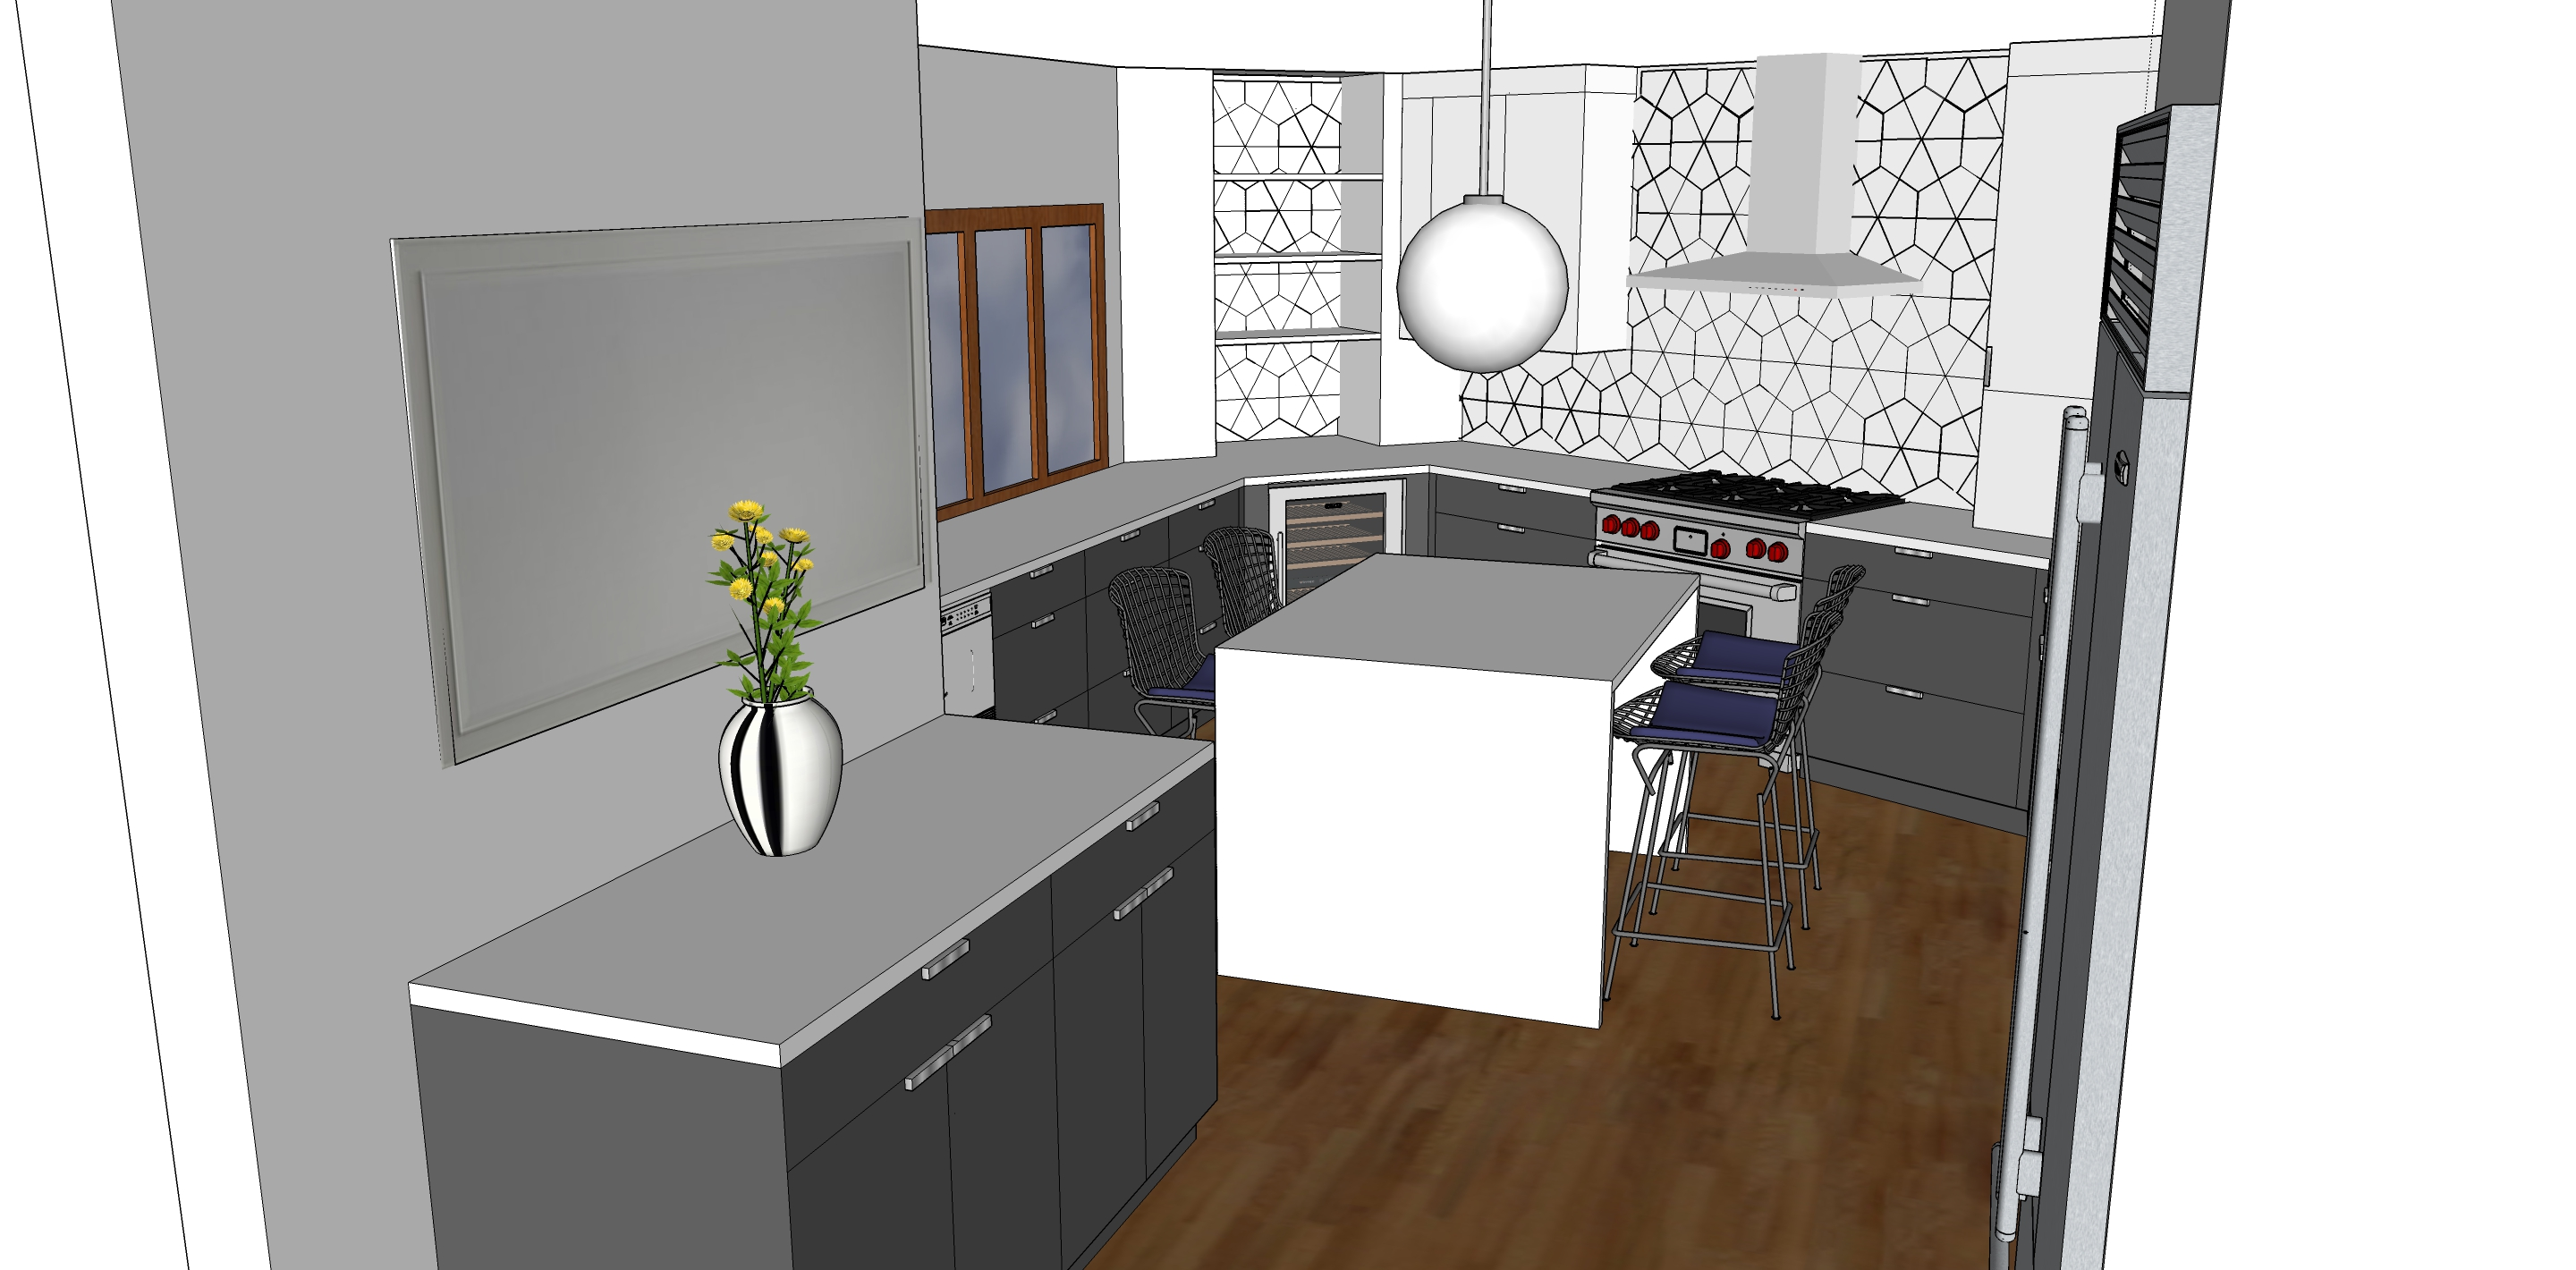 Here Are A Few Examples Of Our Kitchen 3D Design Work: